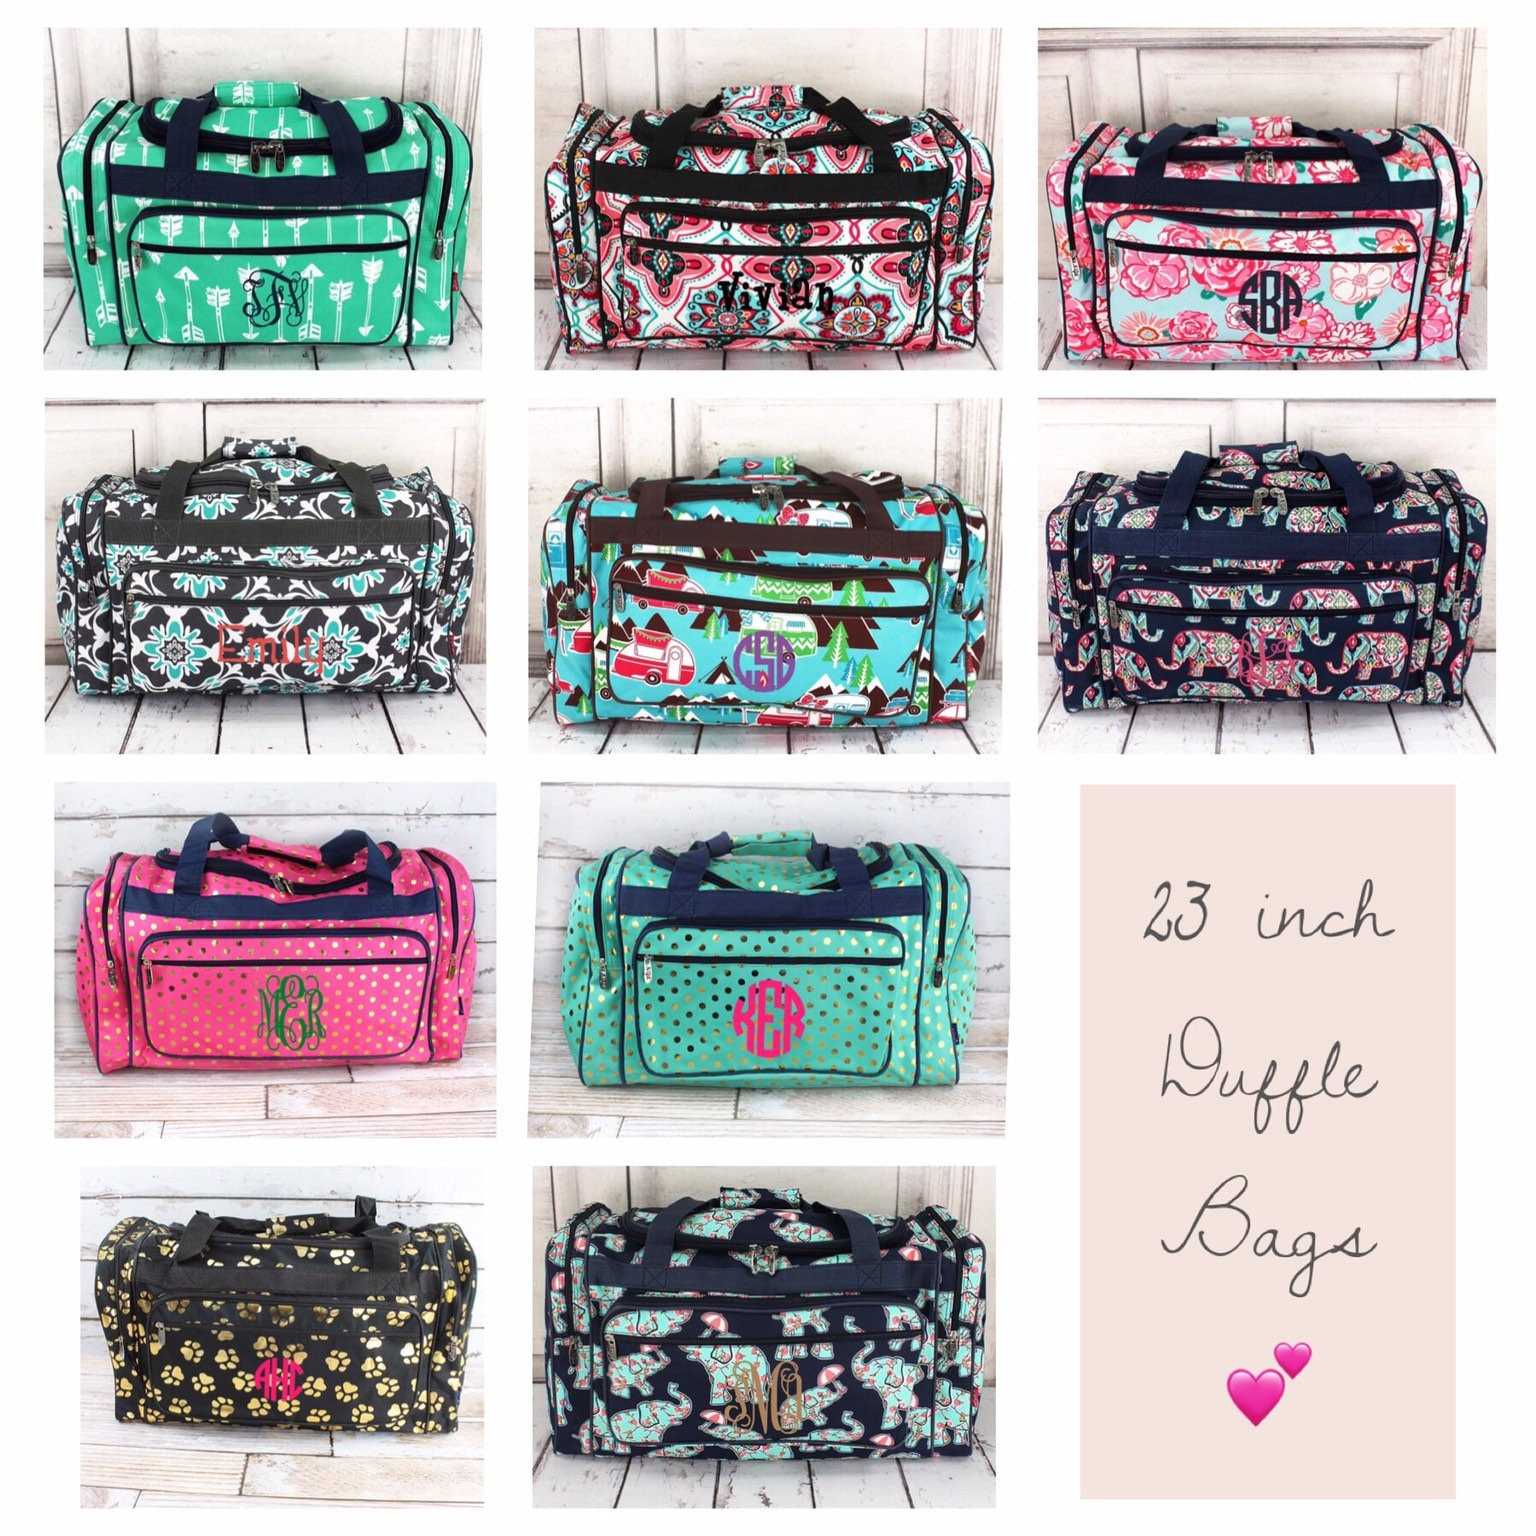 719e96d22 Personalized Duffle Bags , Monogrammed Duffle Bag, Monogrammed Weekender, Girls  Duffle Bag, Dance Bag, Kids Duffle Bag, Carry On Bag